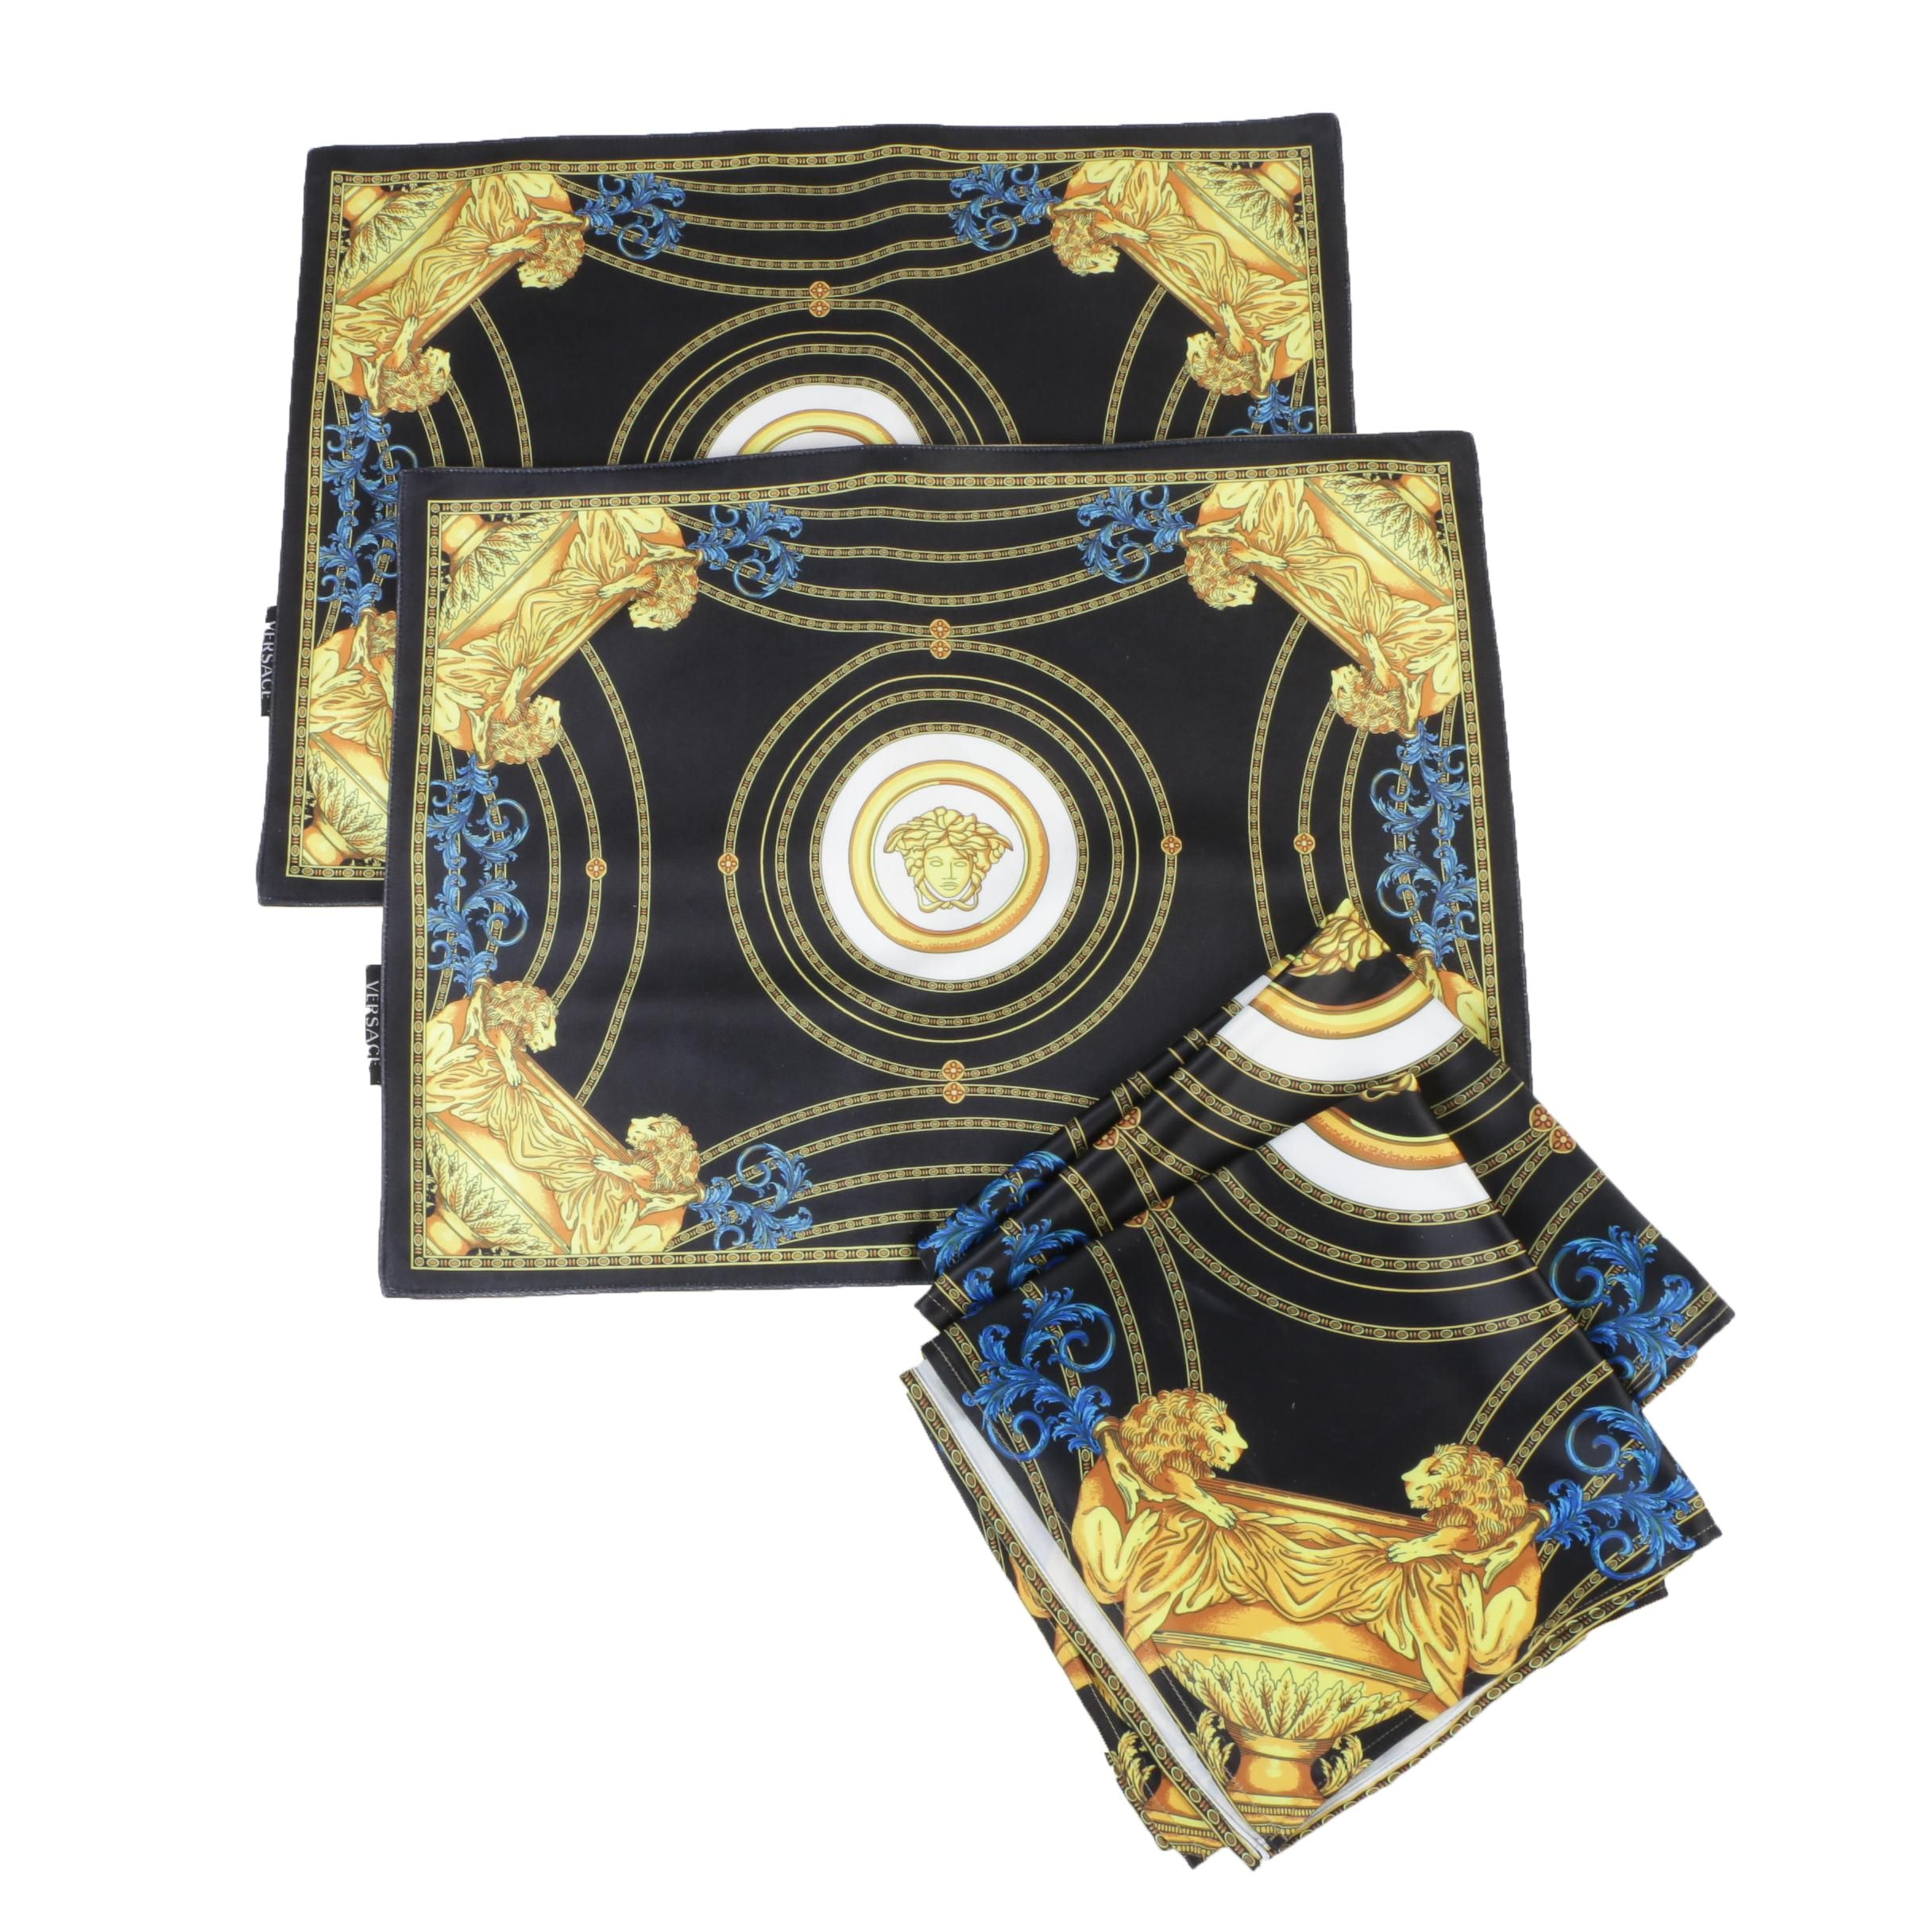 Atelier Versace Black and Gold Velvet Medusa Placemats and Napkins, Italy